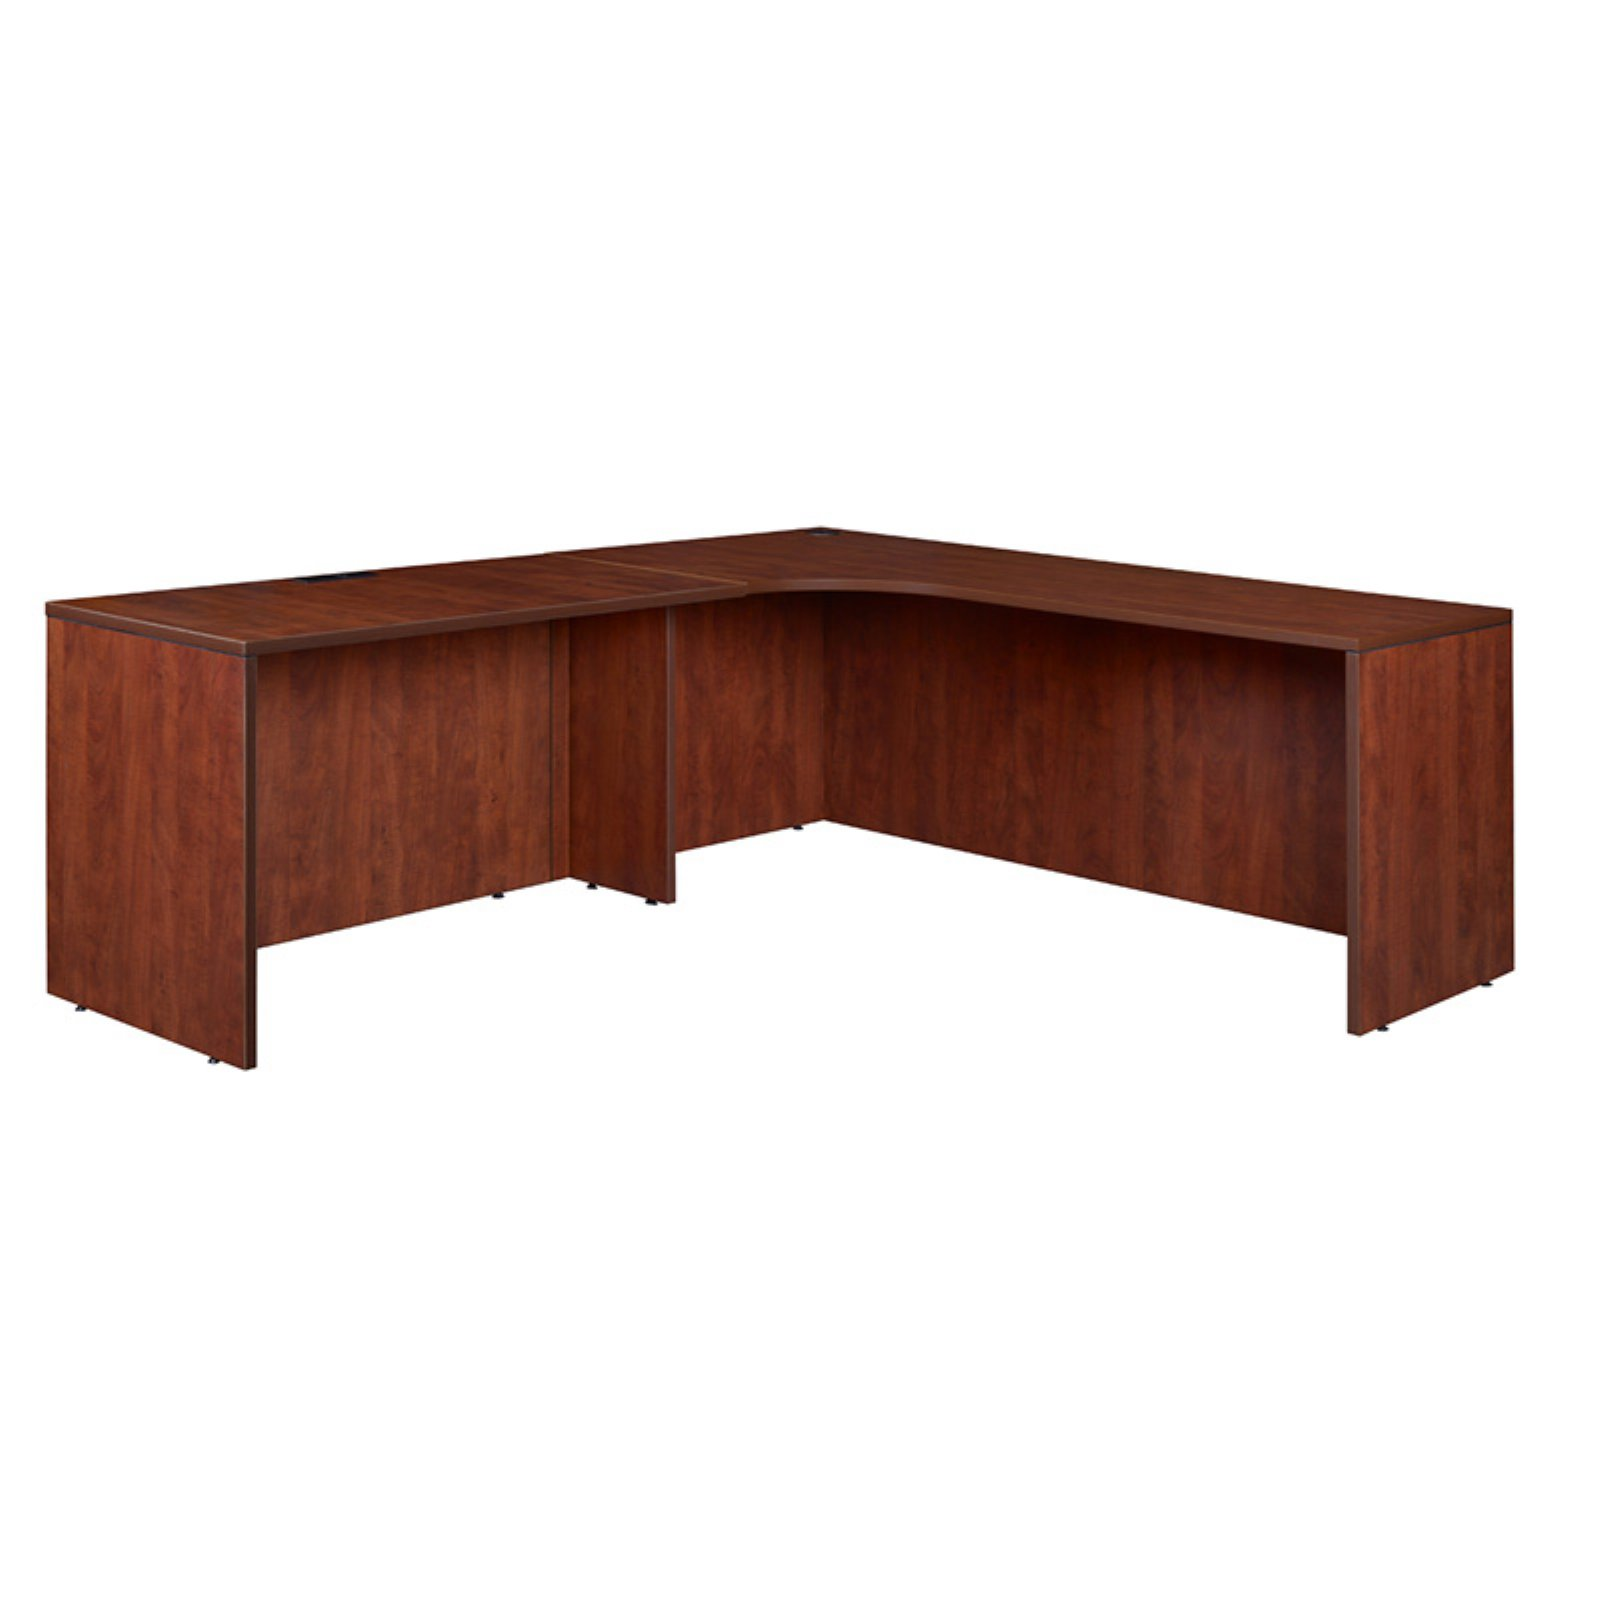 Regency Legacy L Shaped Left Corner Credenza L Shaped Corner Desk Wood Corner Desk Modern Tabletop